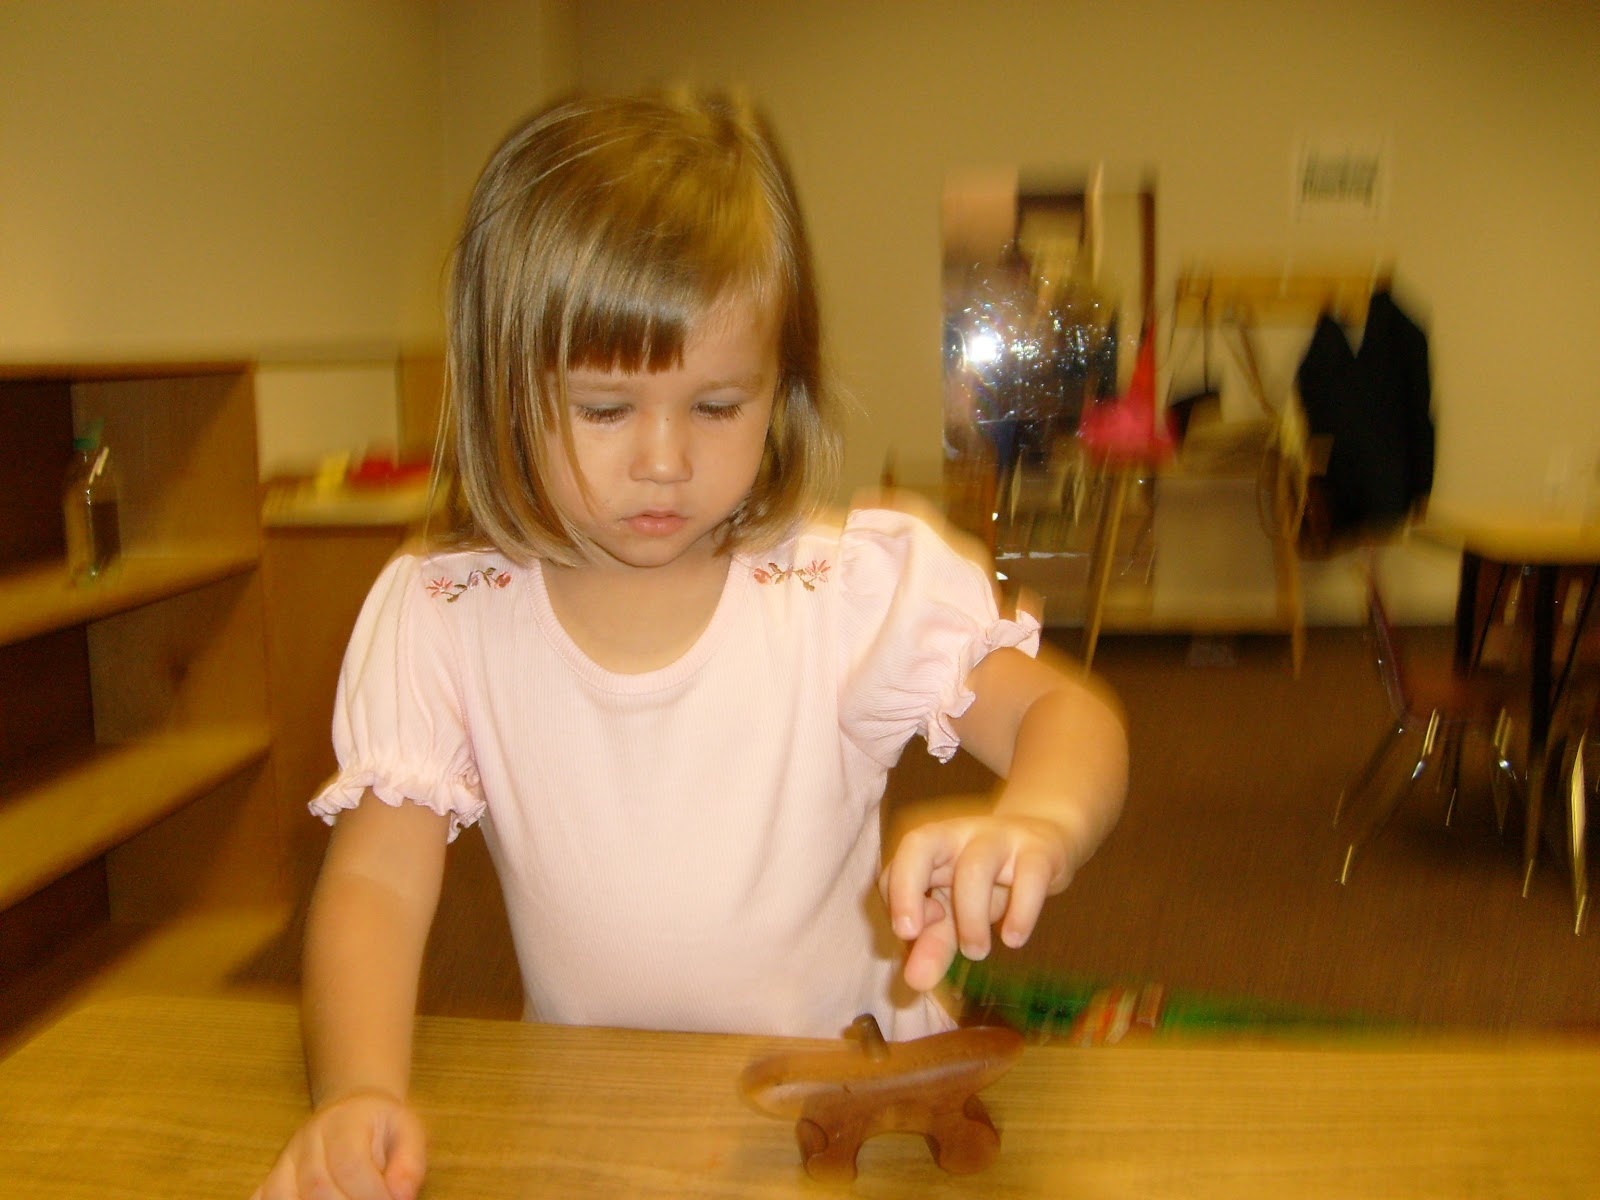 First Day of Preschool - S7300435.JPG